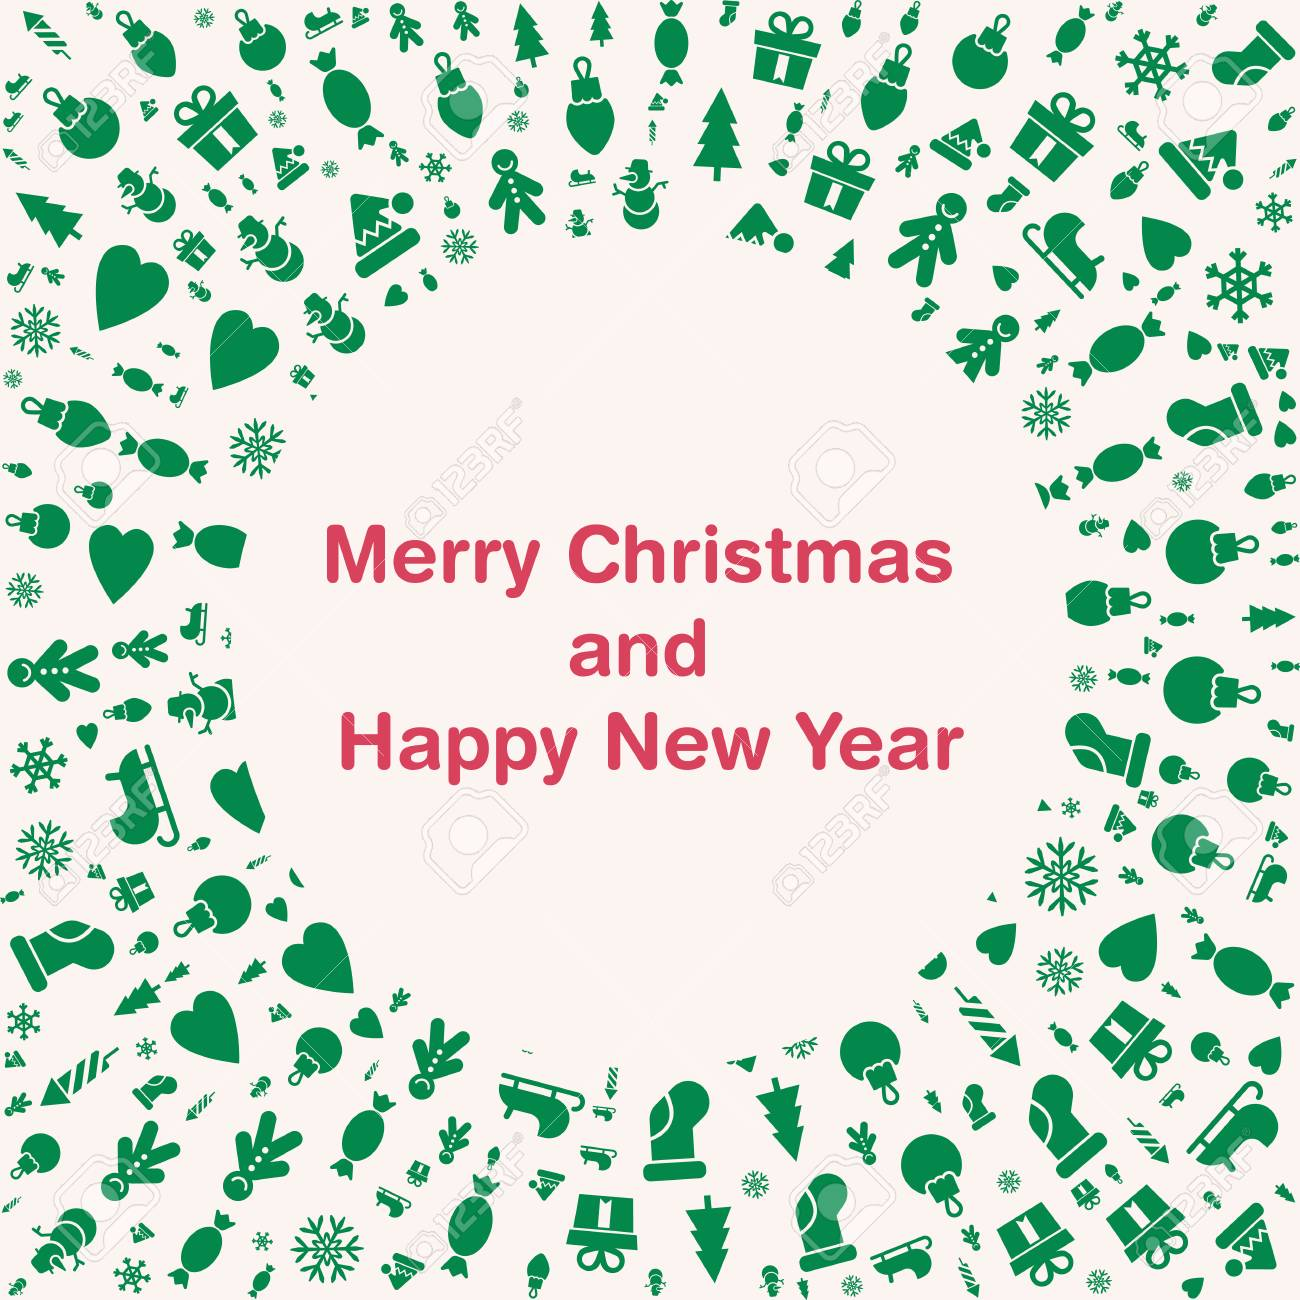 merry christmas and happy new year cards quality vector flat royalty free cliparts vectors and stock illustration image 87777535 123rf com